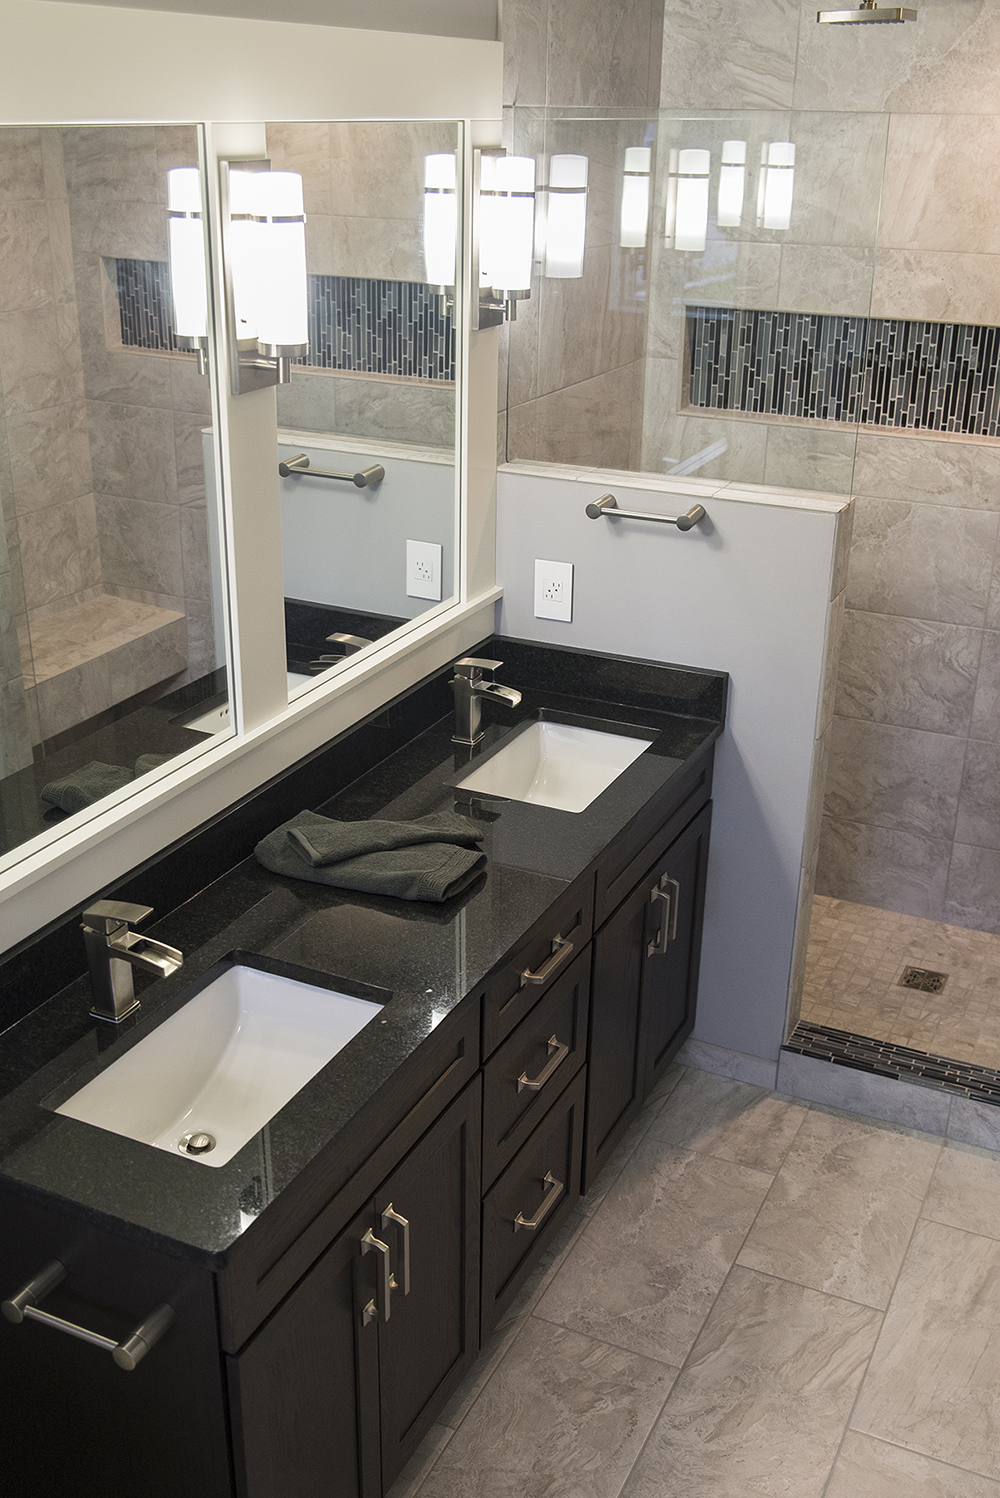 Filling the home with Keeler cabinet hardware - Keeler Products